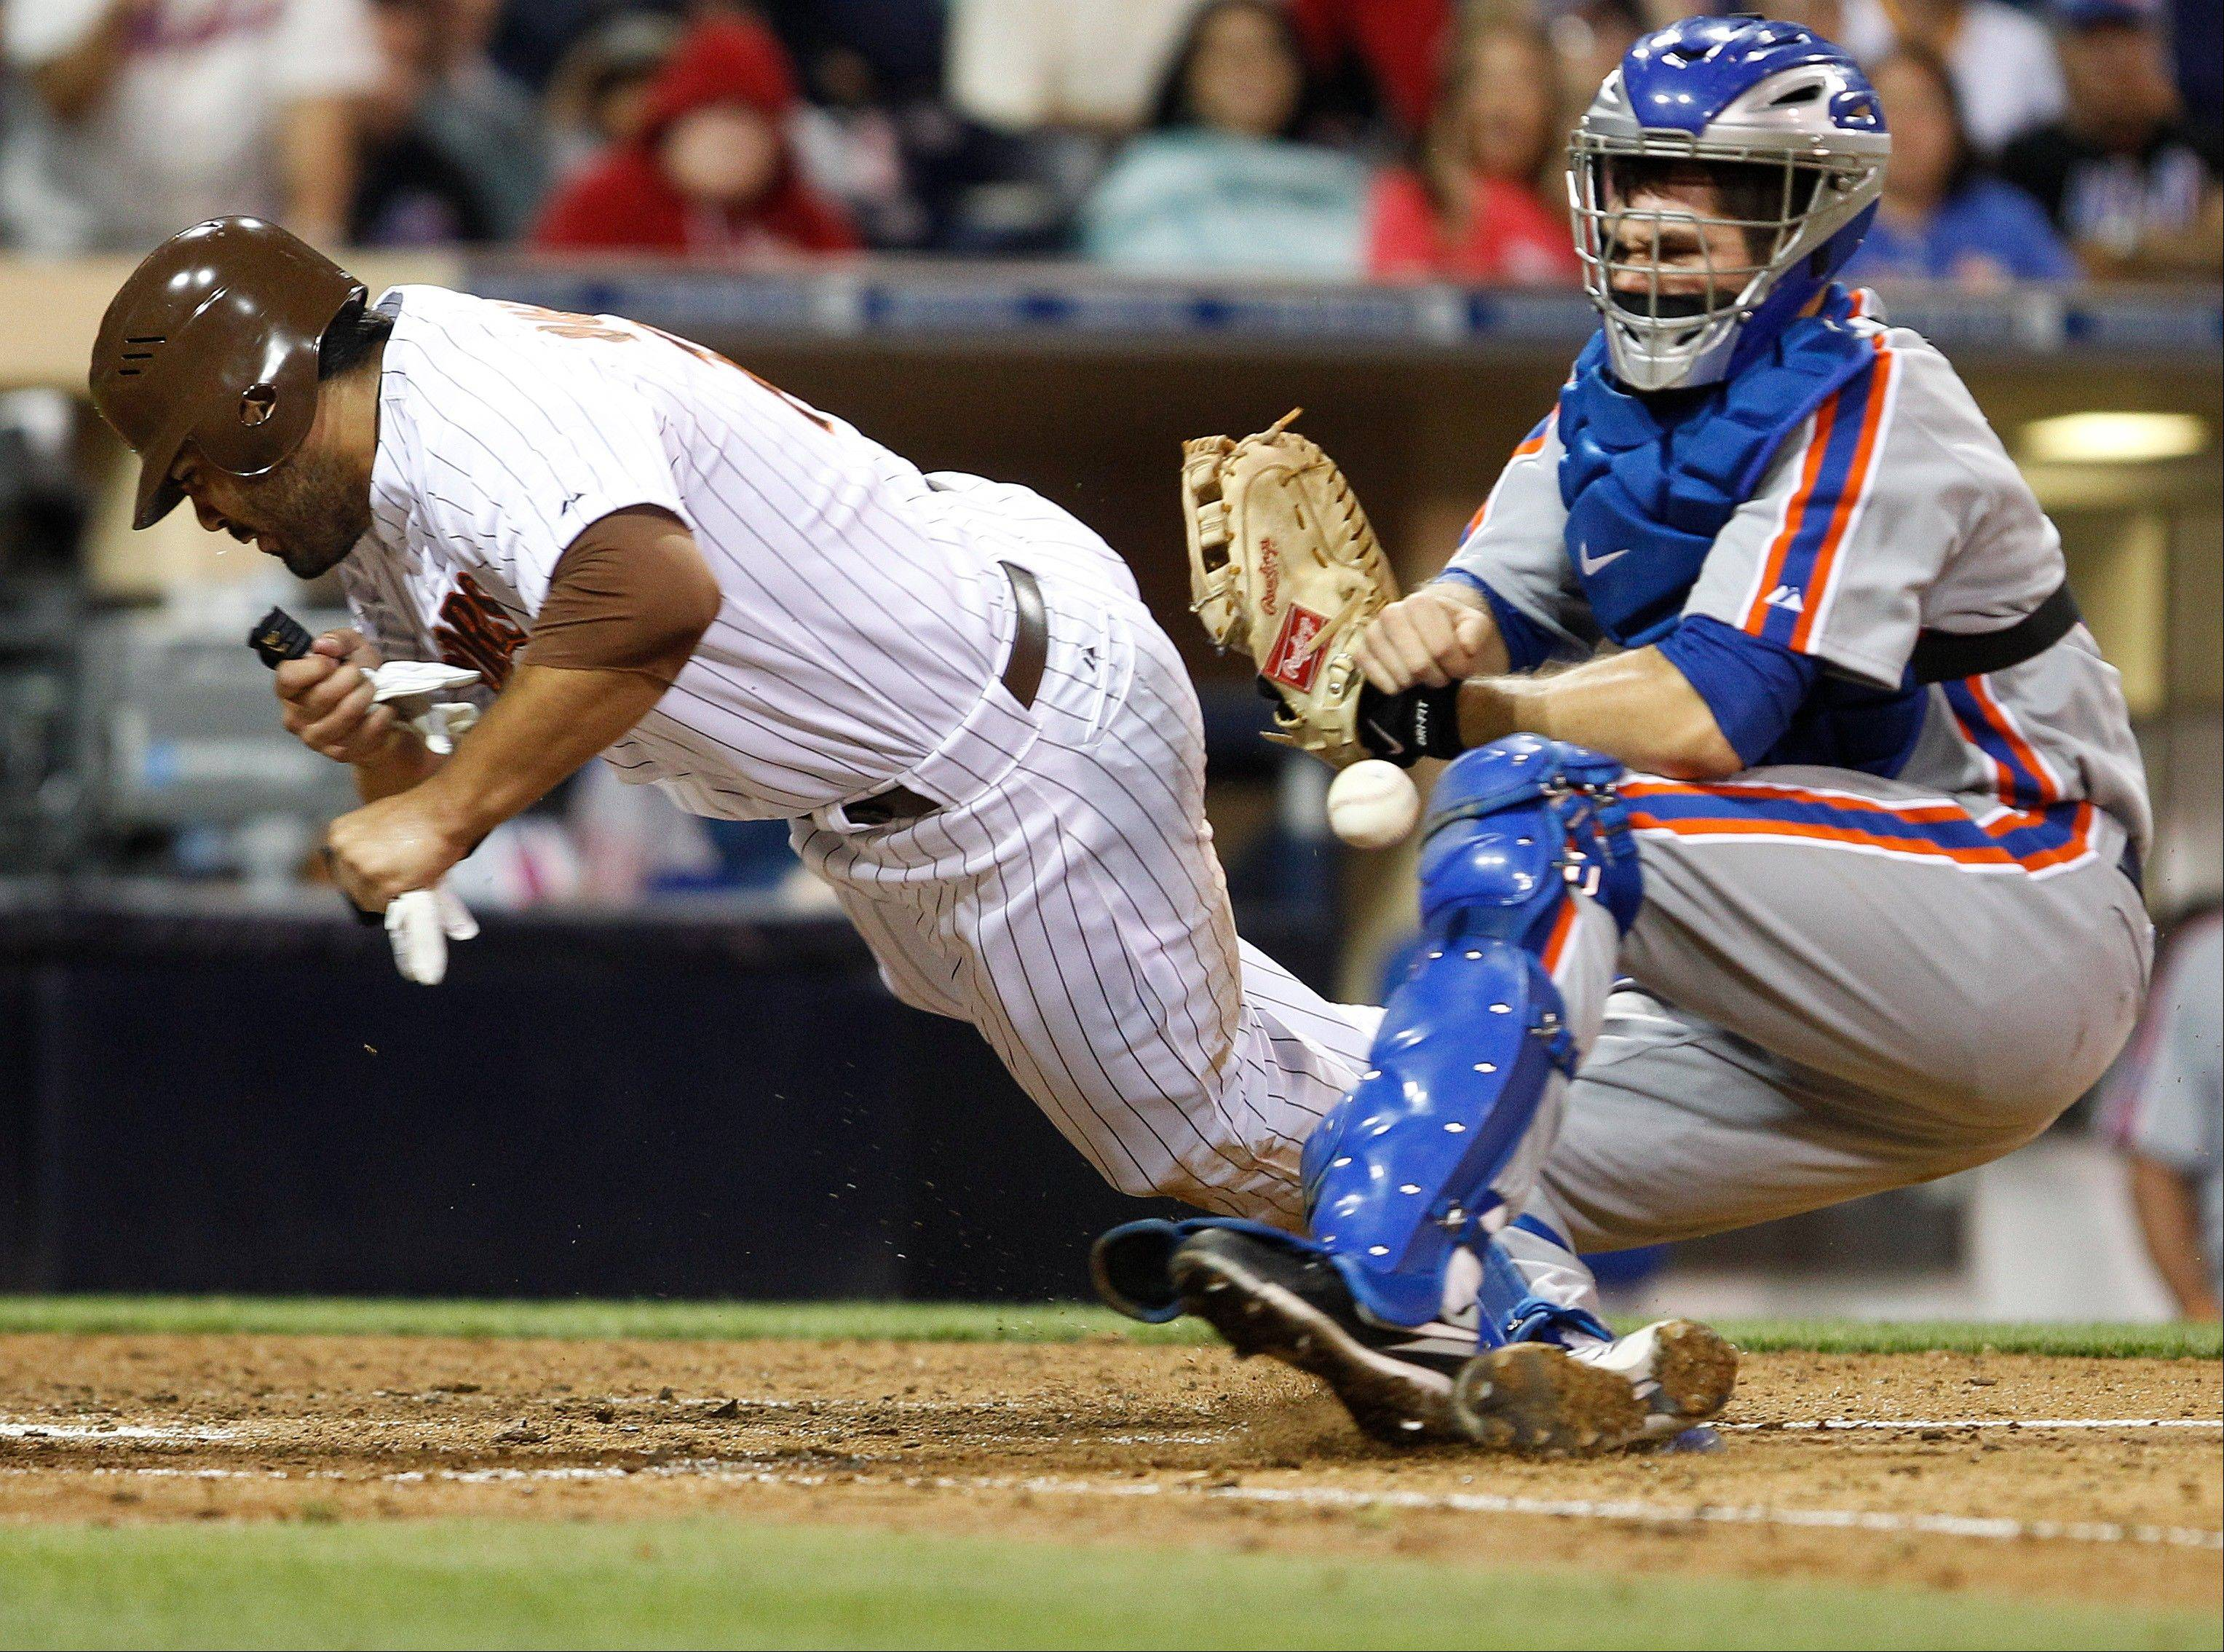 The Padres' Carlos Quentin knocks the ball loose as he plows into New York Mets catcher Josh Thole during the seventh inning Friday in San Diego.